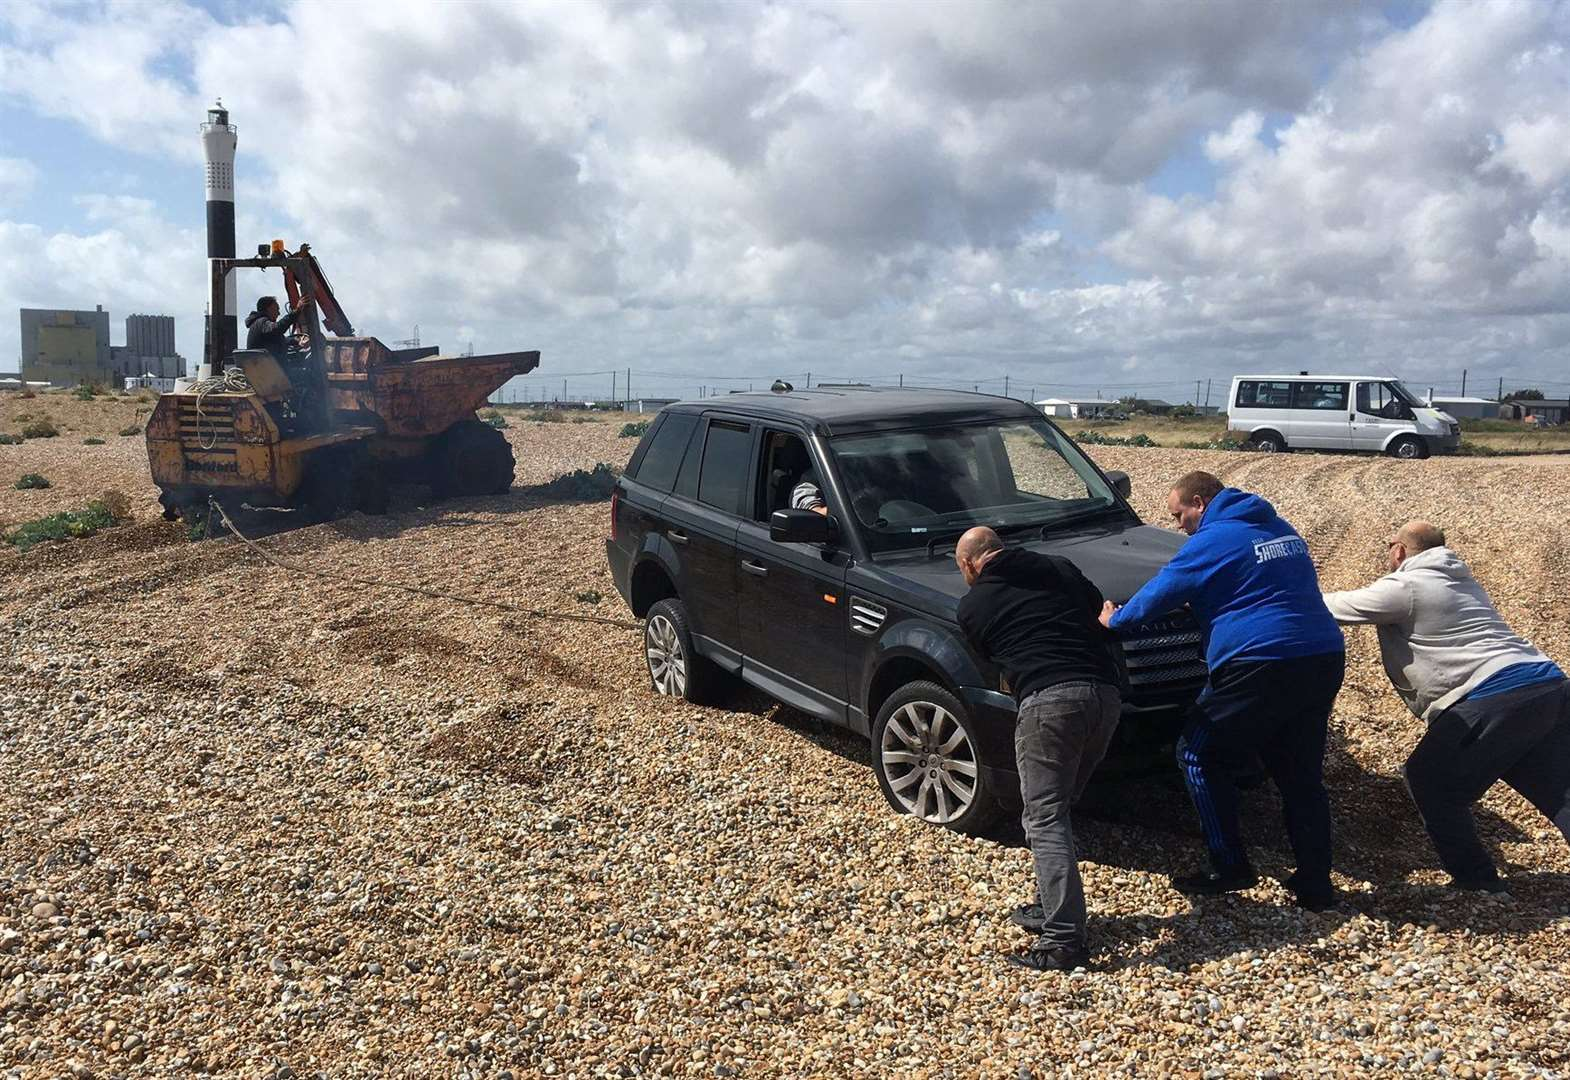 4x4 rescued after getting stuck in shingle